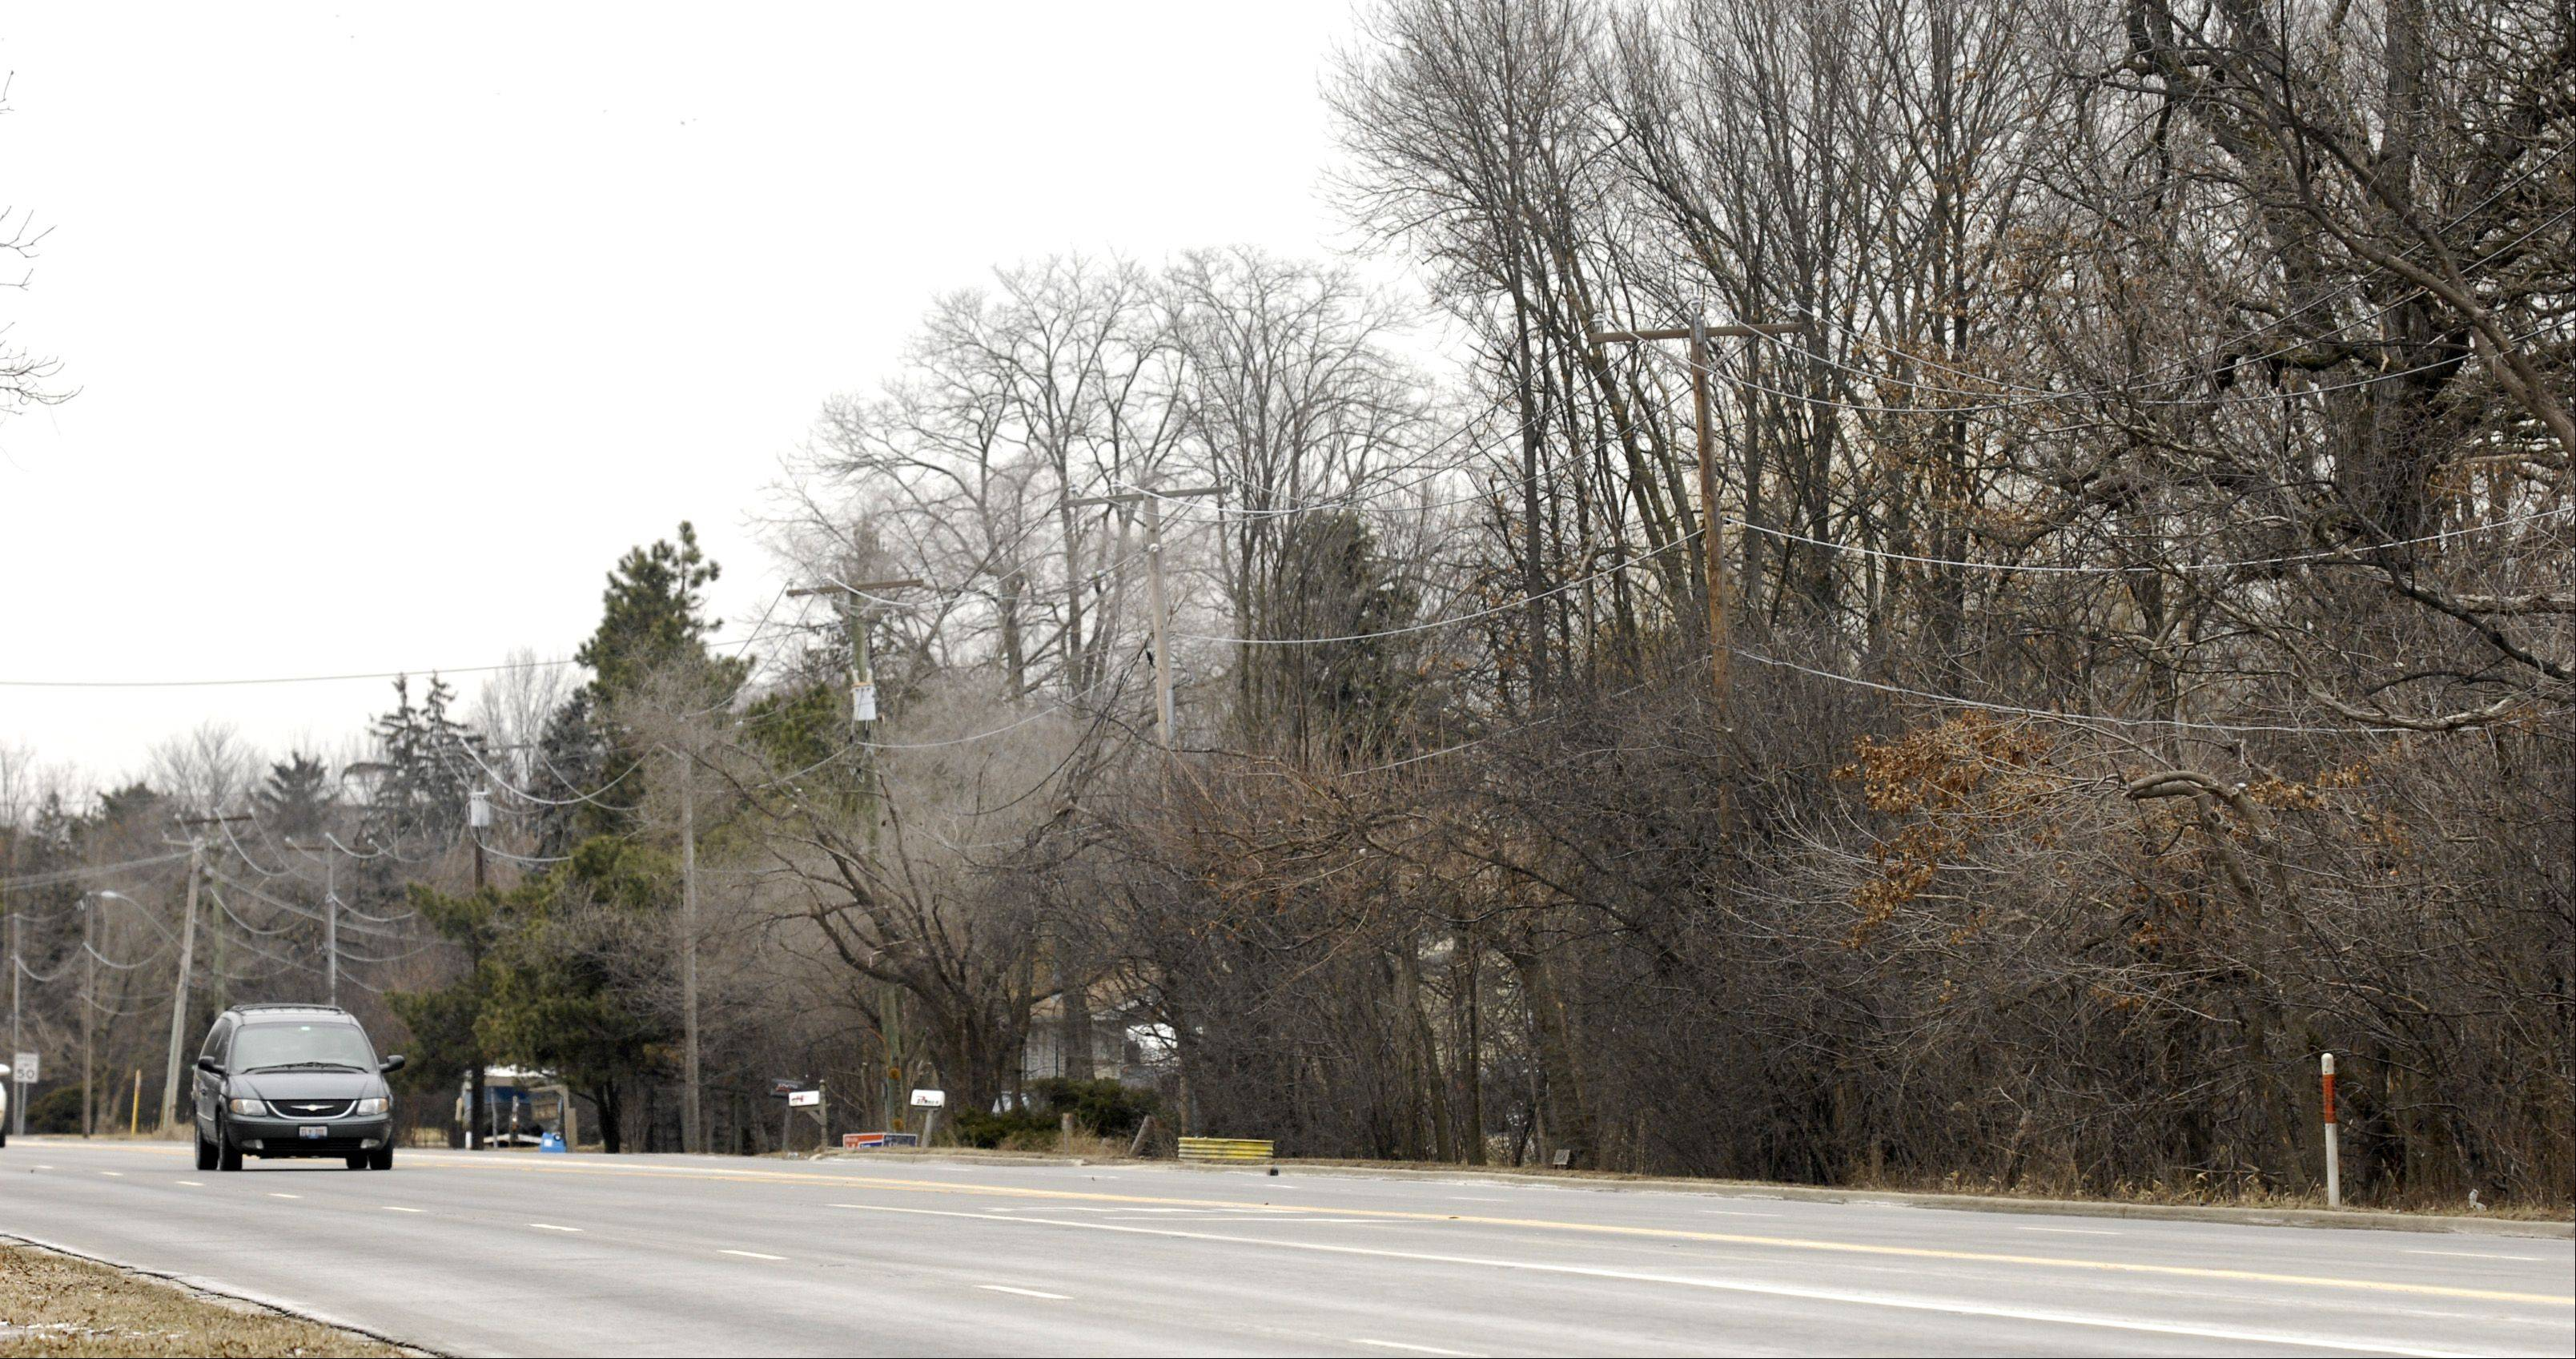 New village board members in Winfield are expected to repeal a former board's decision to rezone properties along Roosevelt Road.